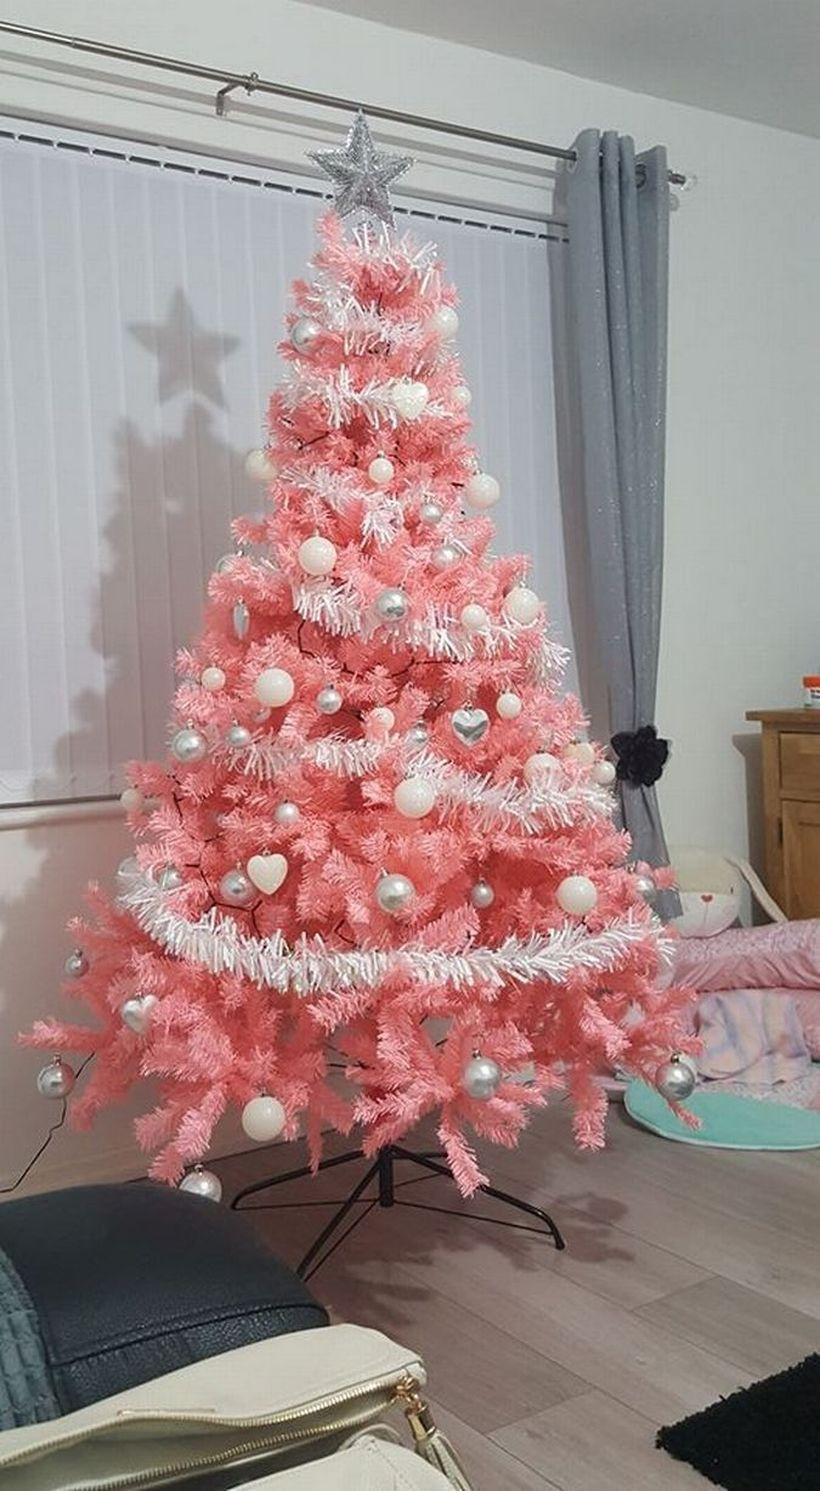 Pink chrismast tree combine with white ornament and white ribbon